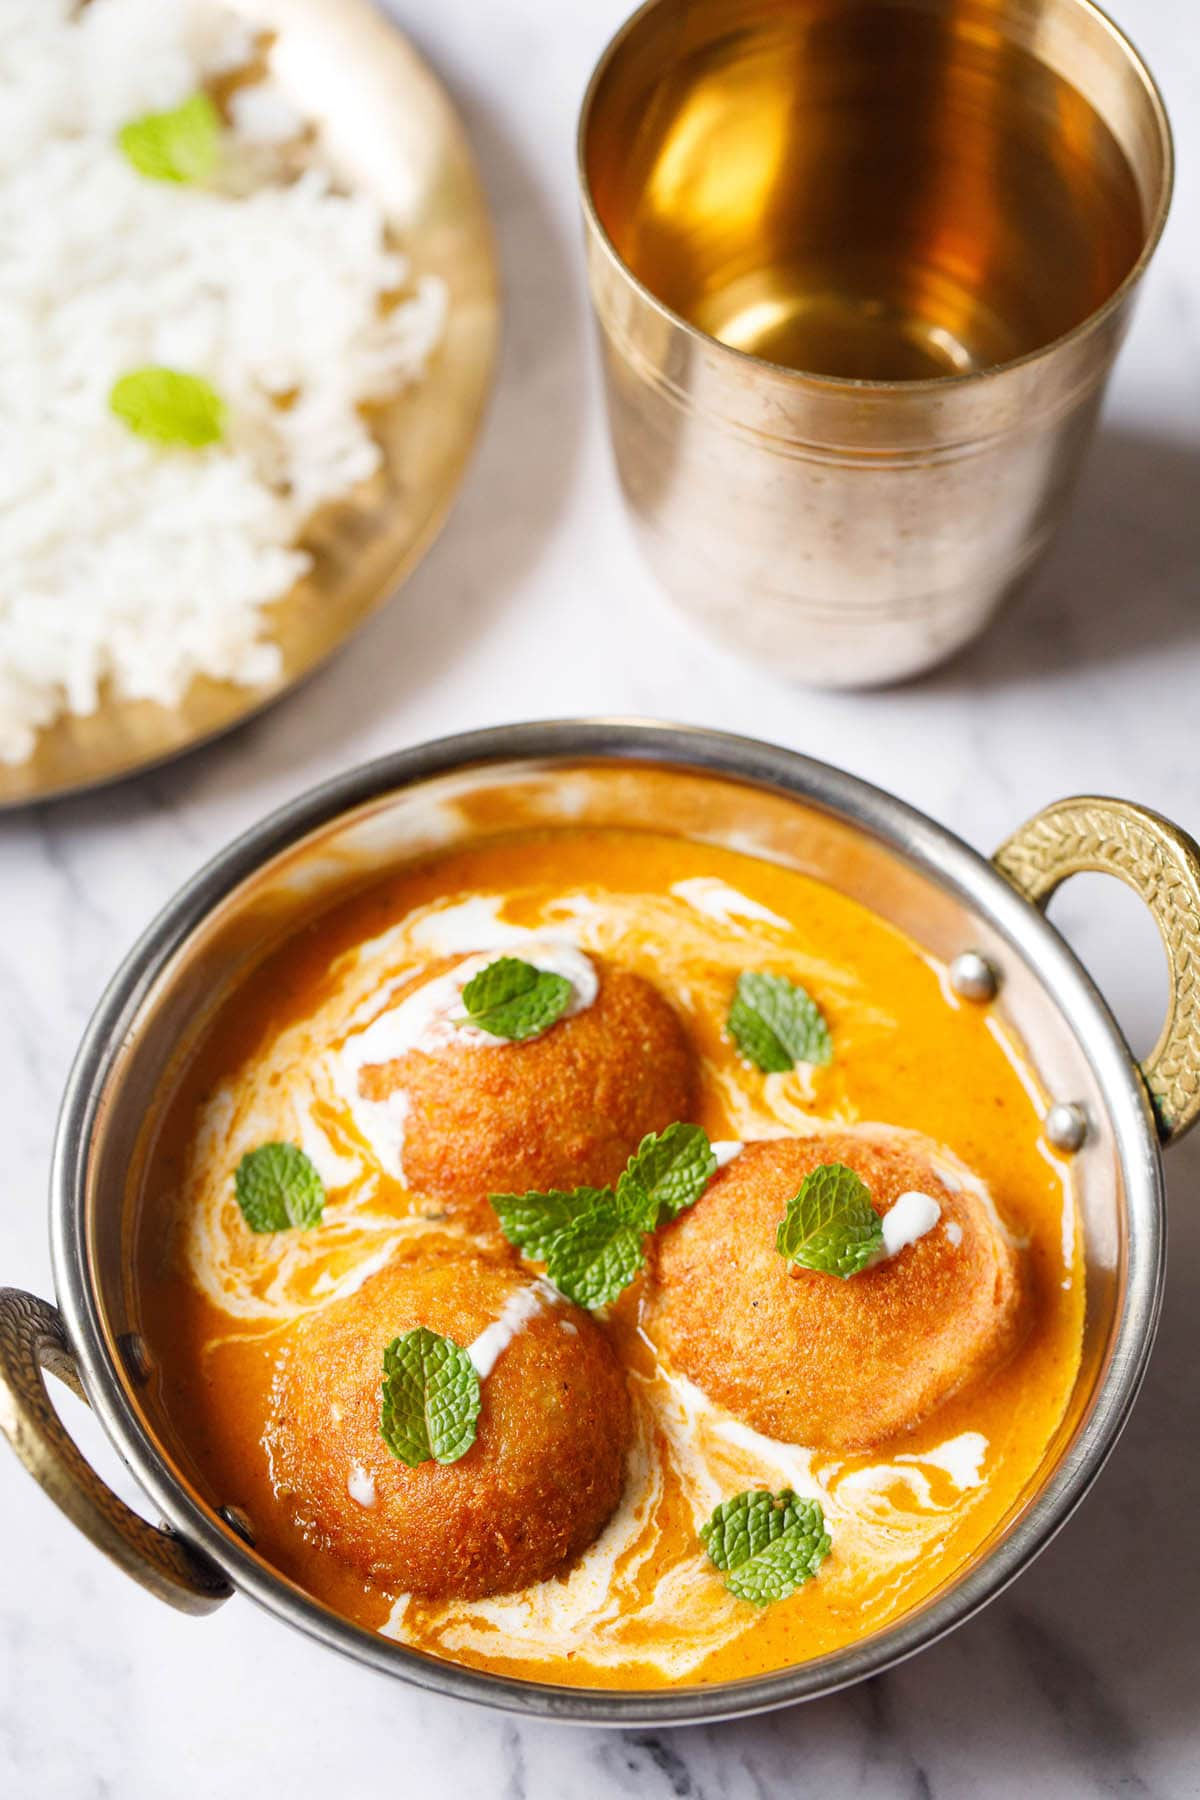 3 malai kofta garnished with mint leaves in a silver serving dish with handles on a white marble